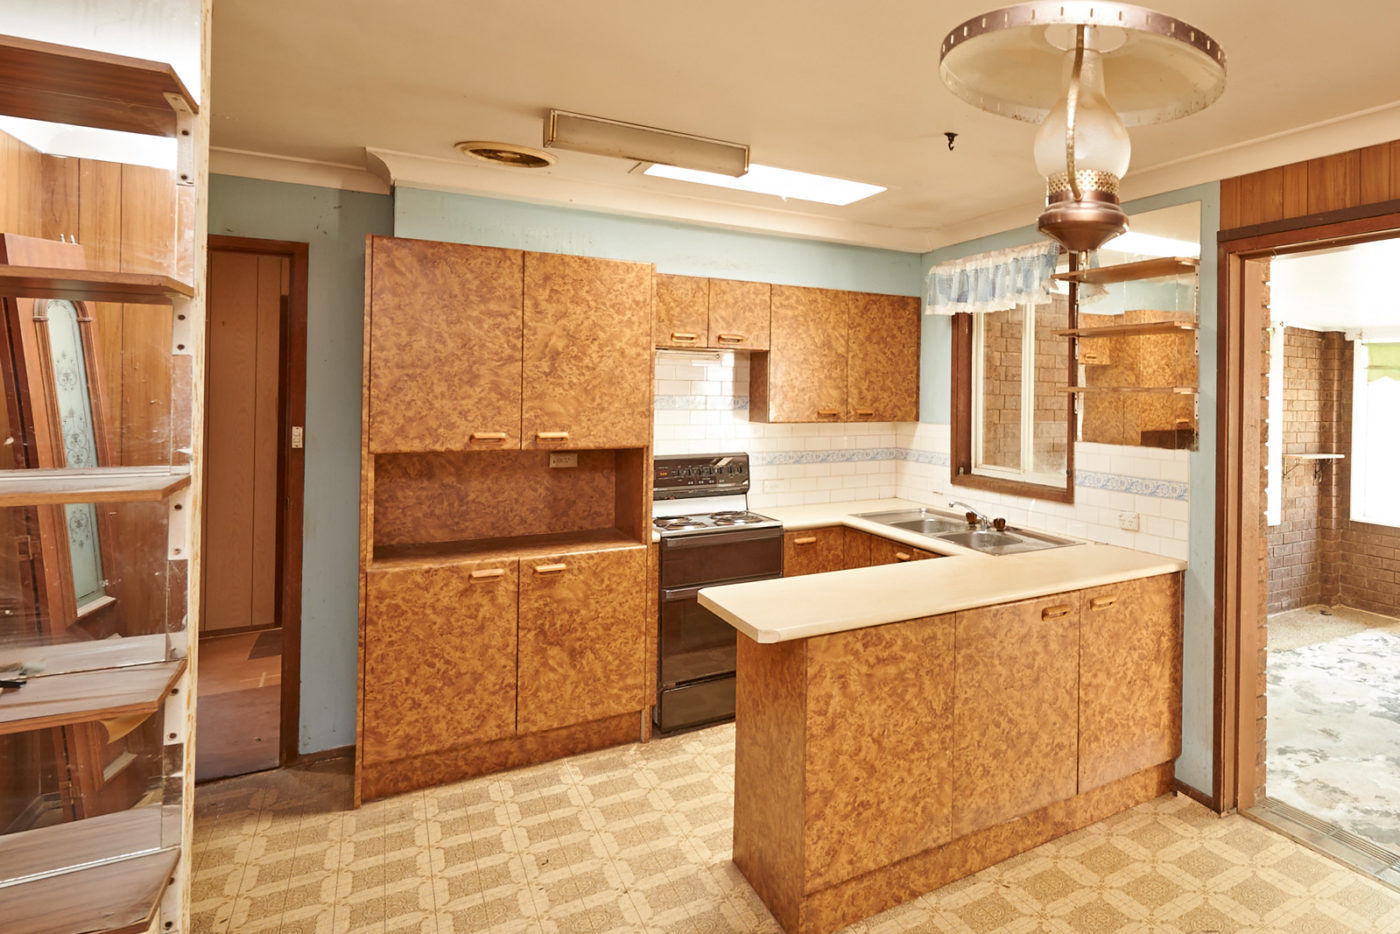 Renovating Your Kitchen On A Shoestring Budget - Renovating ...